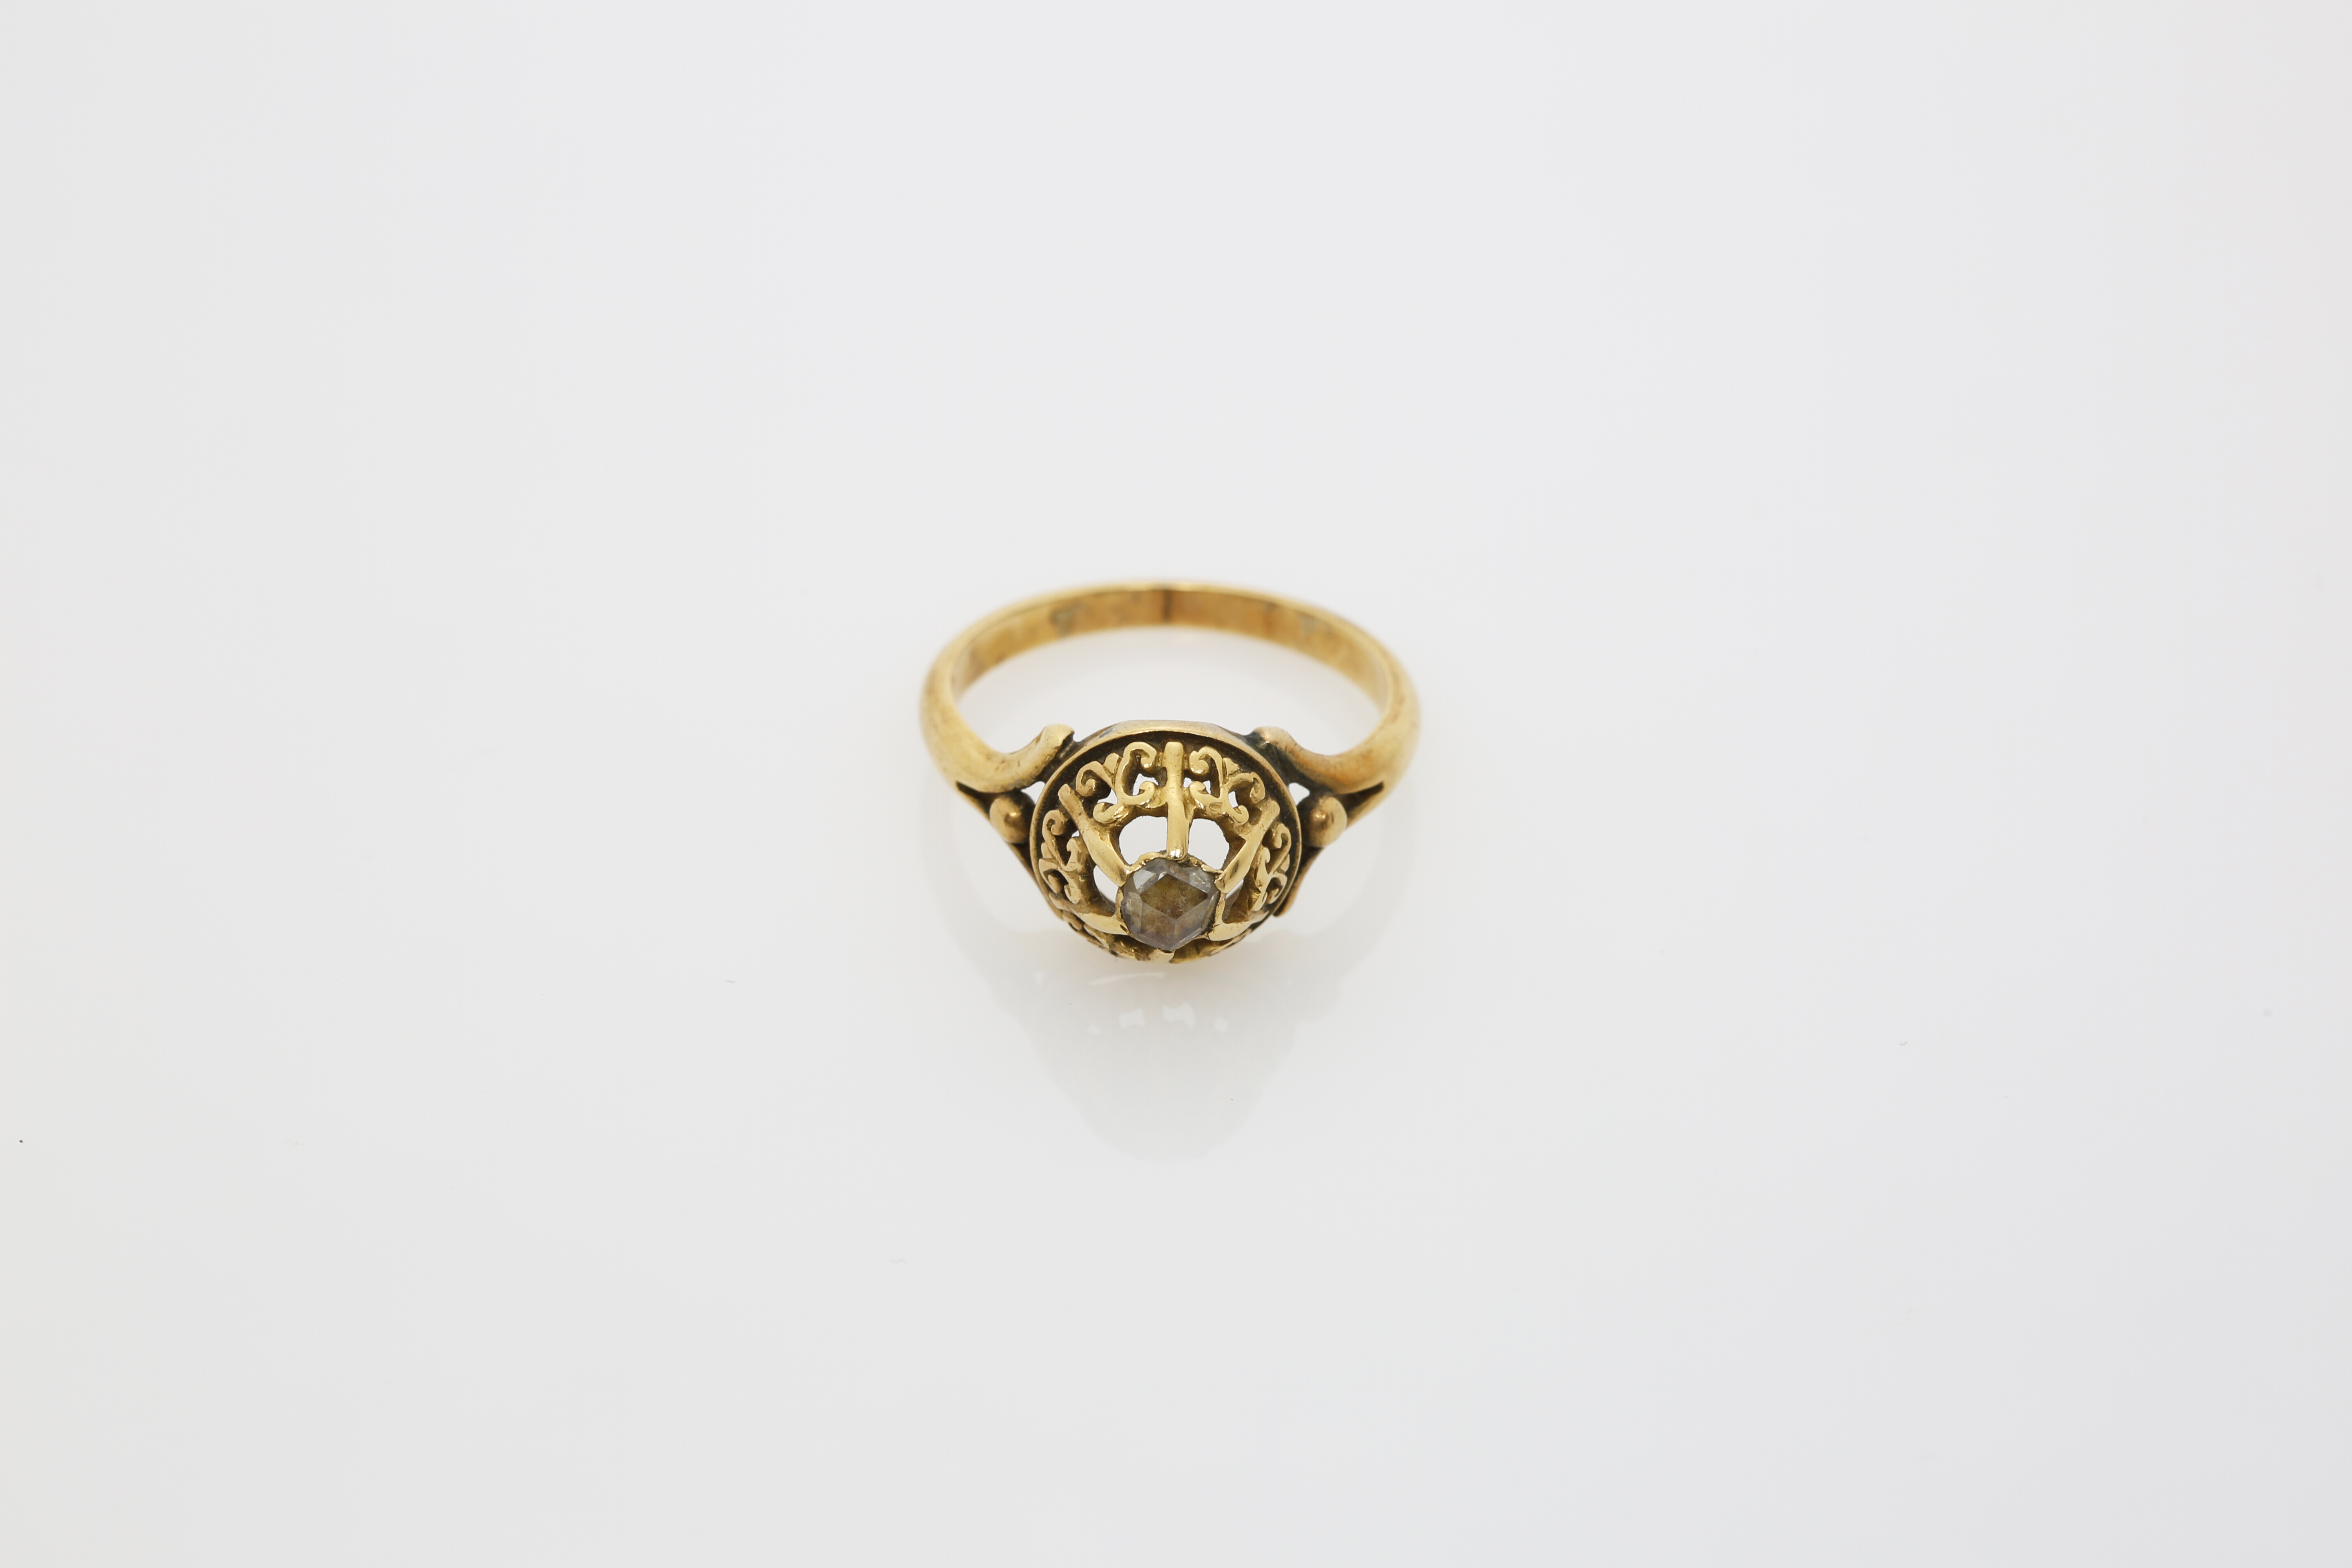 An early 20th century Lady's Constantinople gold ring. Approx: 4 gr. - Image 2 of 2